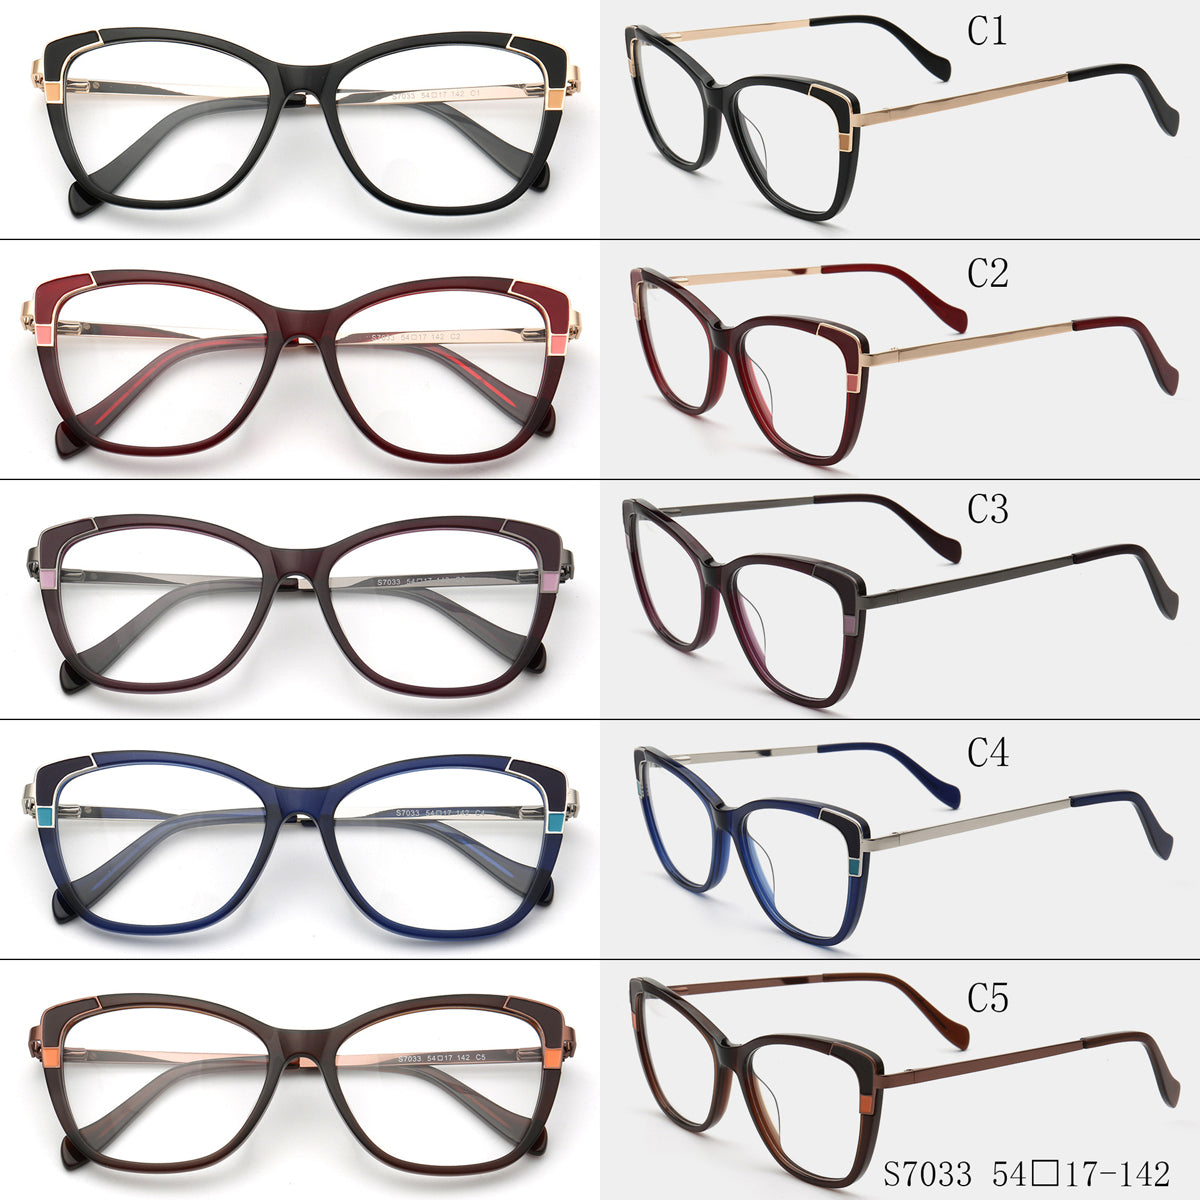 Cat-Eye Glasses S7033